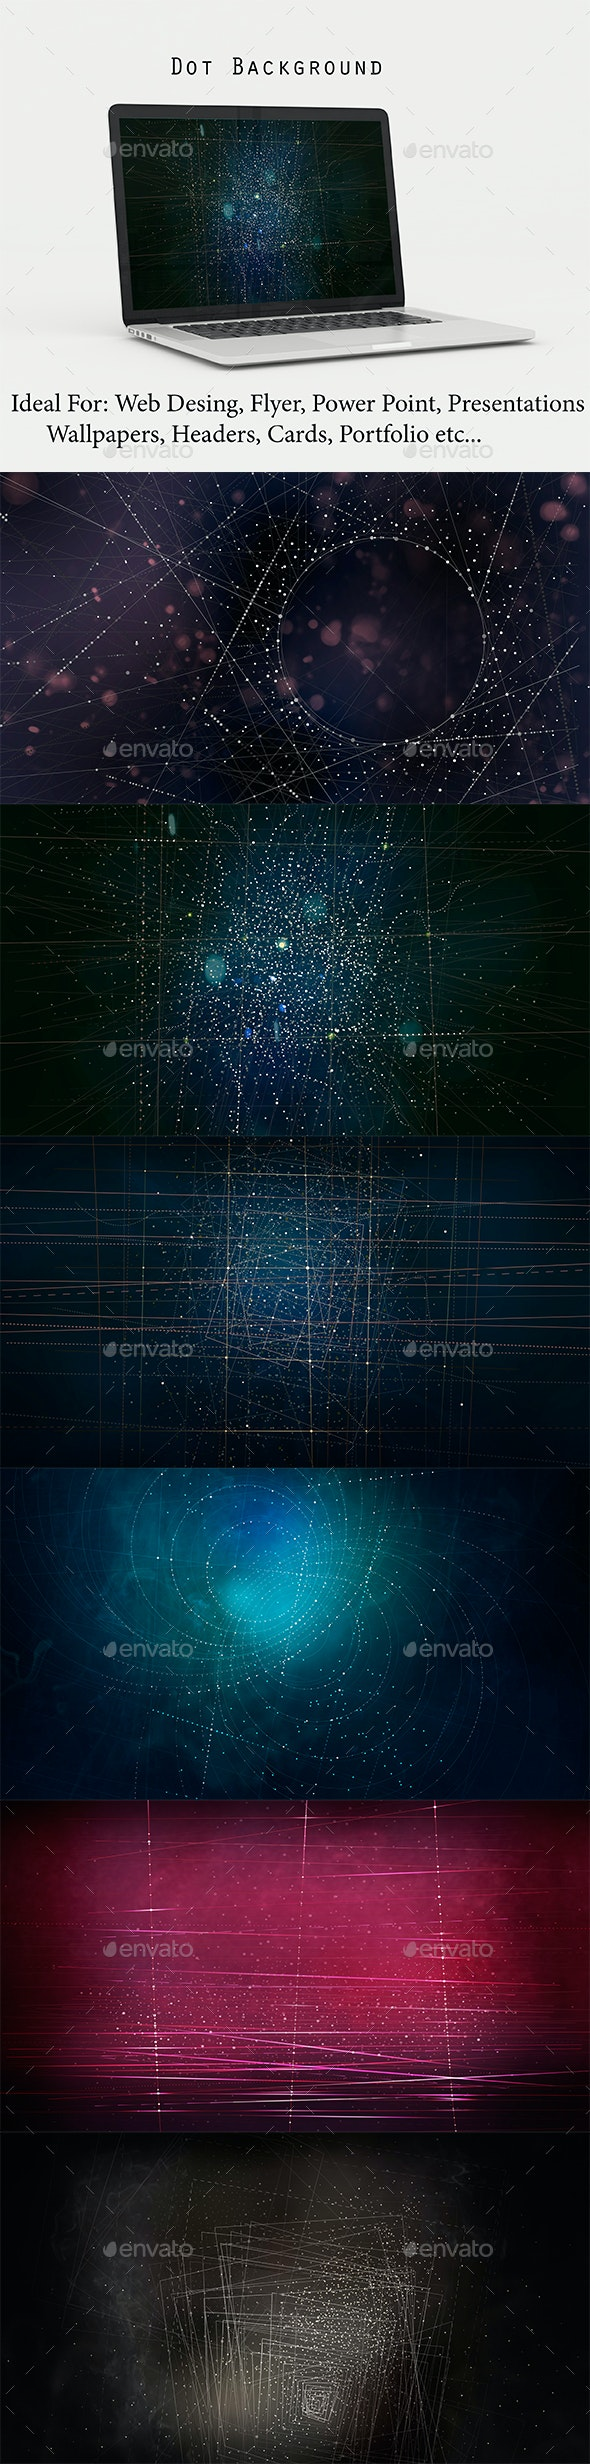 Dot Background - Abstract Backgrounds